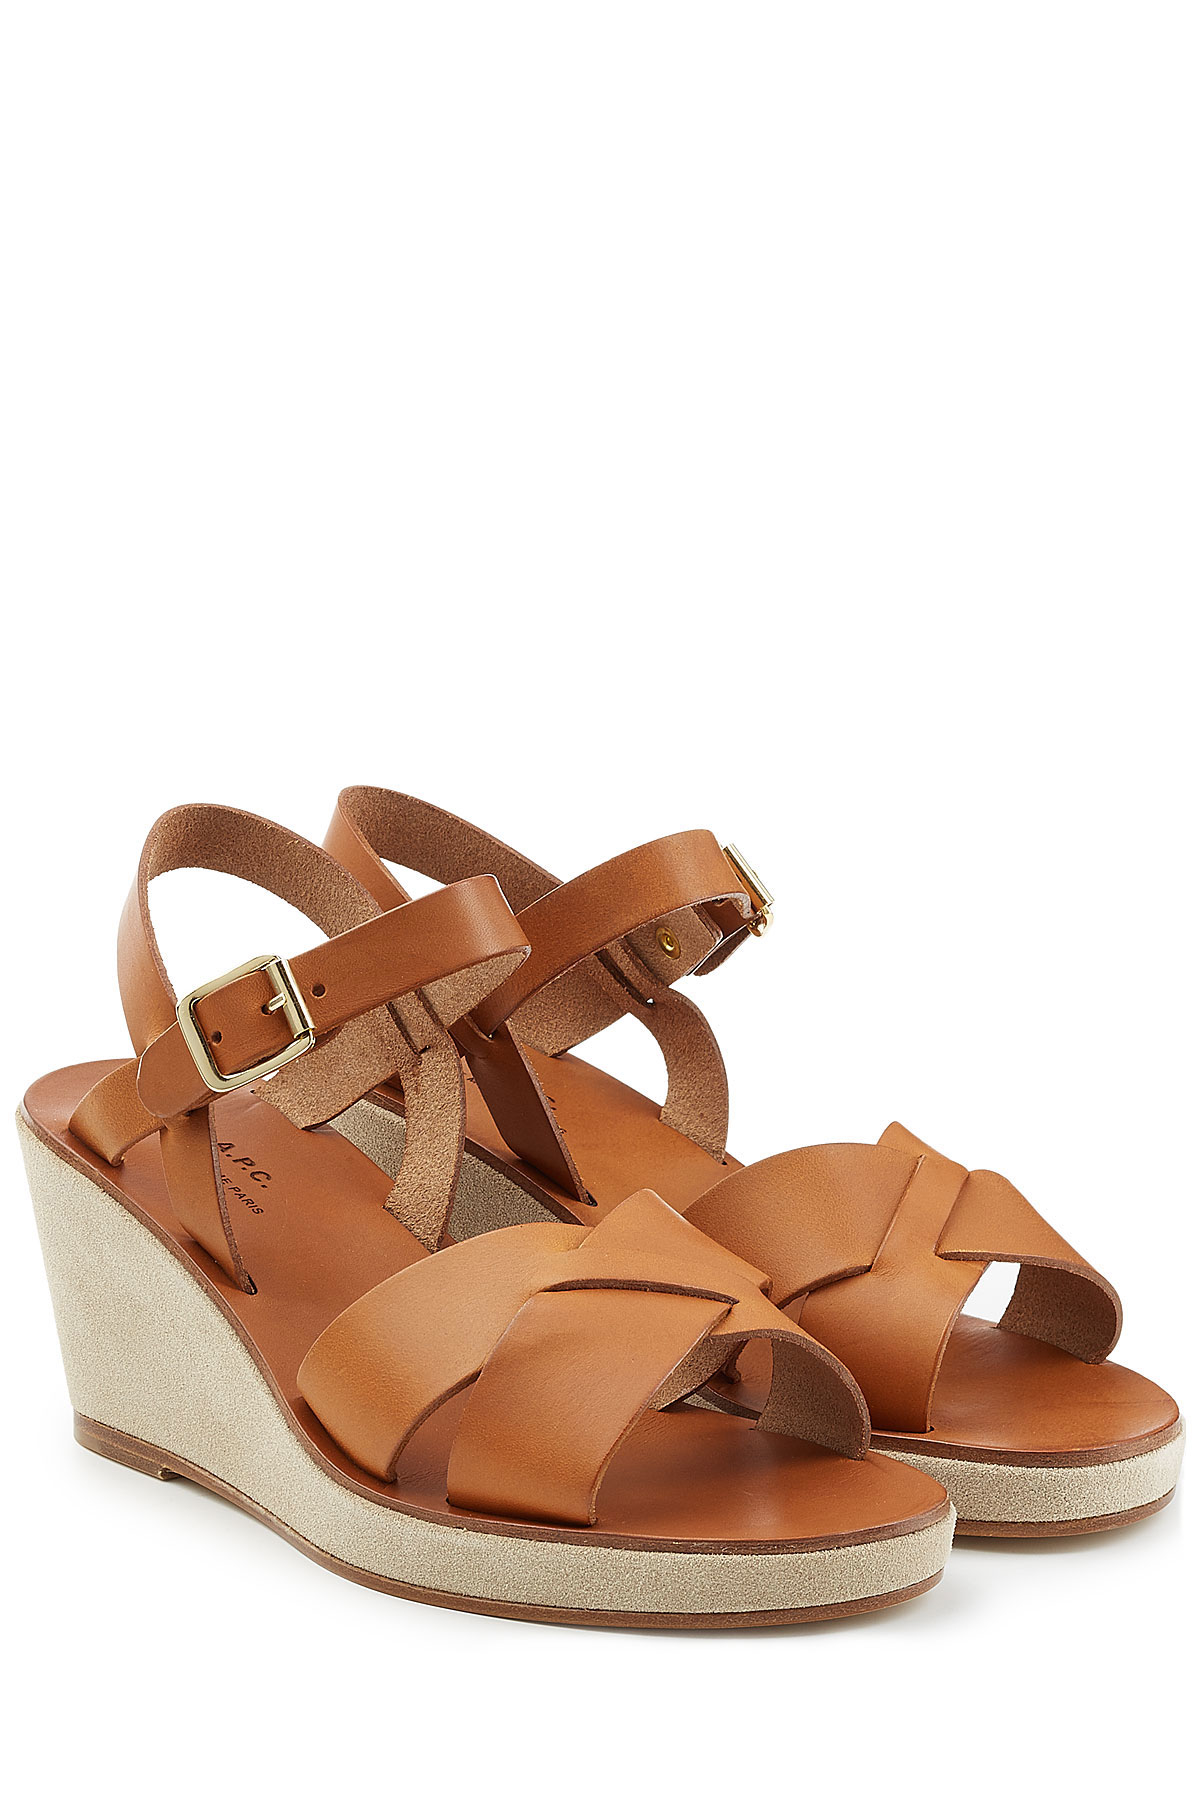 8ec01791f3ed Lyst - A.P.C. Leather Wedge Sandals - Brown in Brown